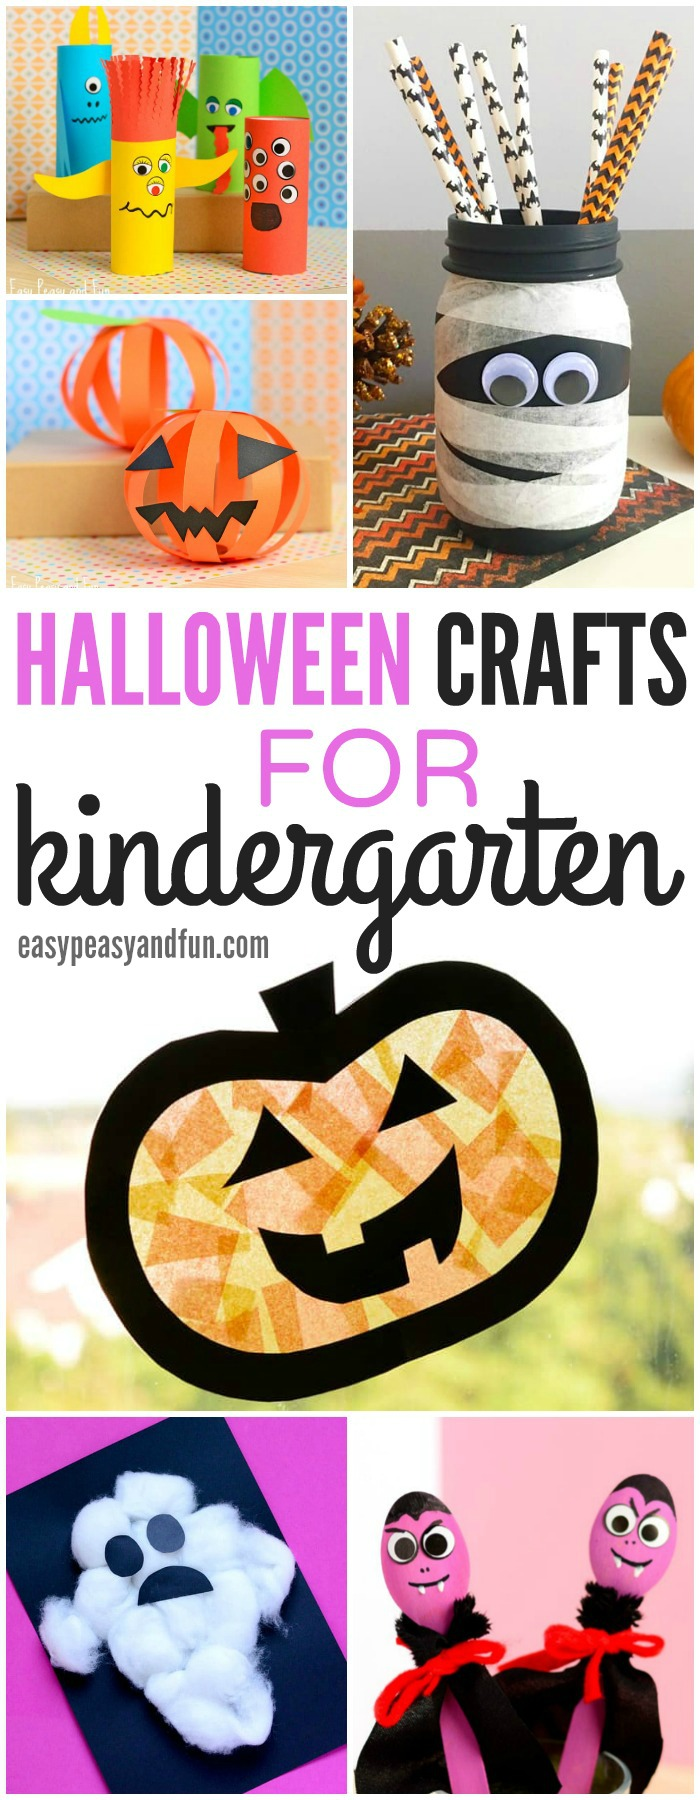 Fun and Simple Halloween Crafts for Kindergarten